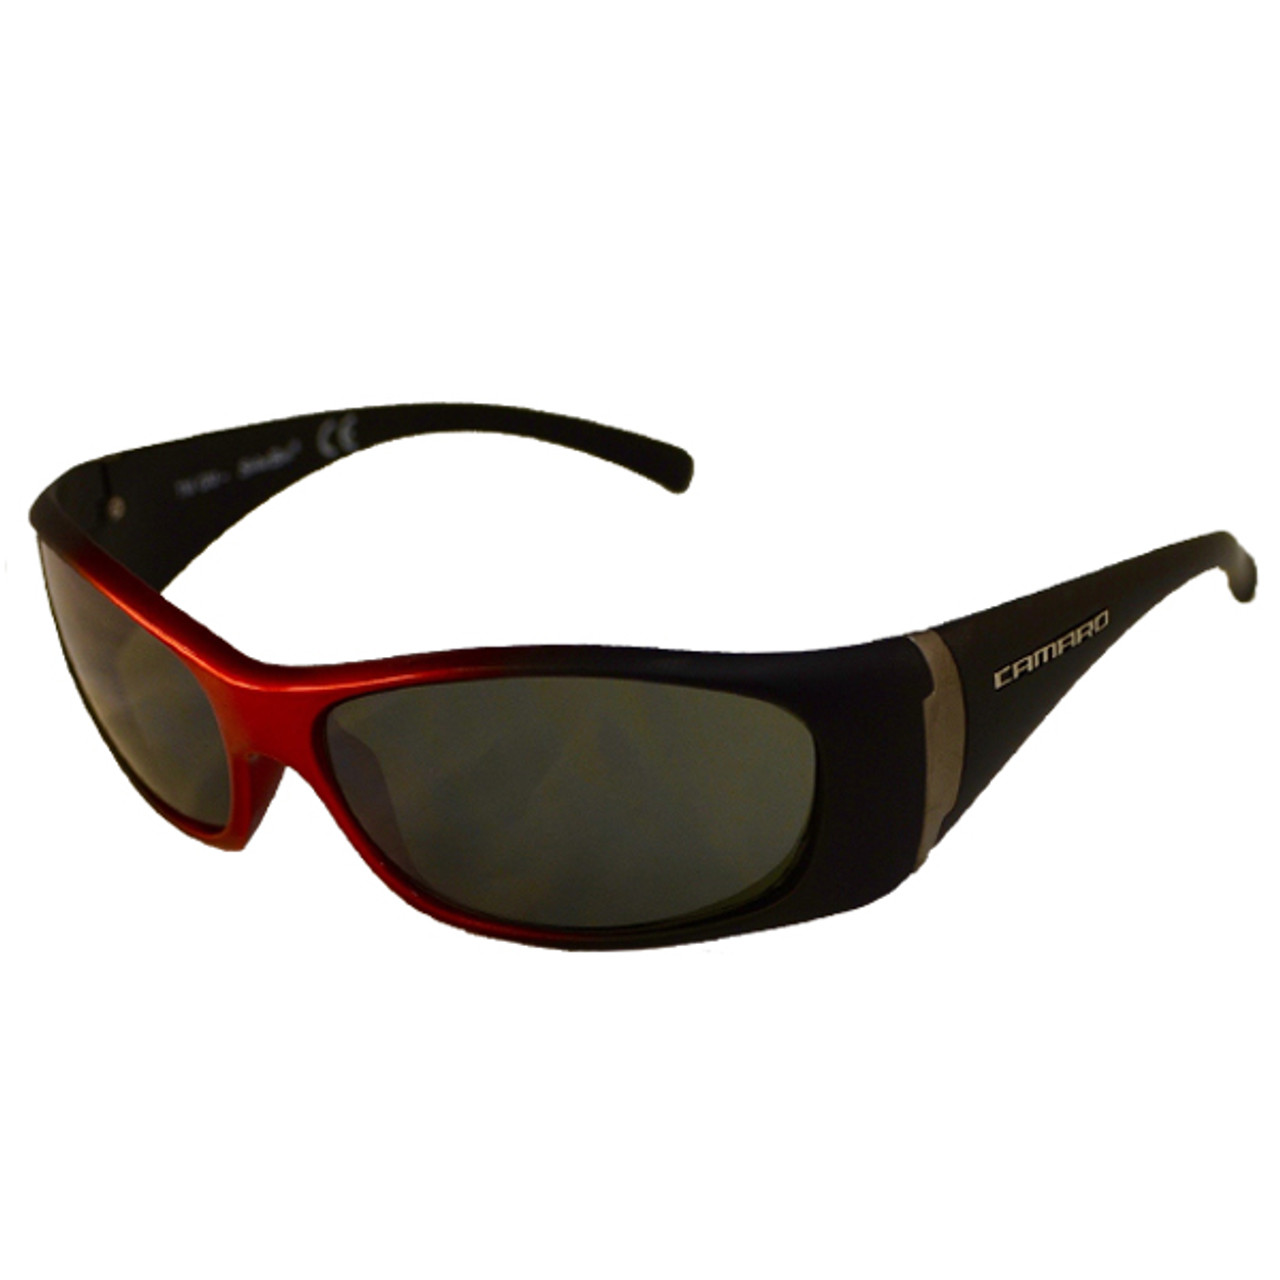 Camaro 1003 Driving Series Sunglasses - Red